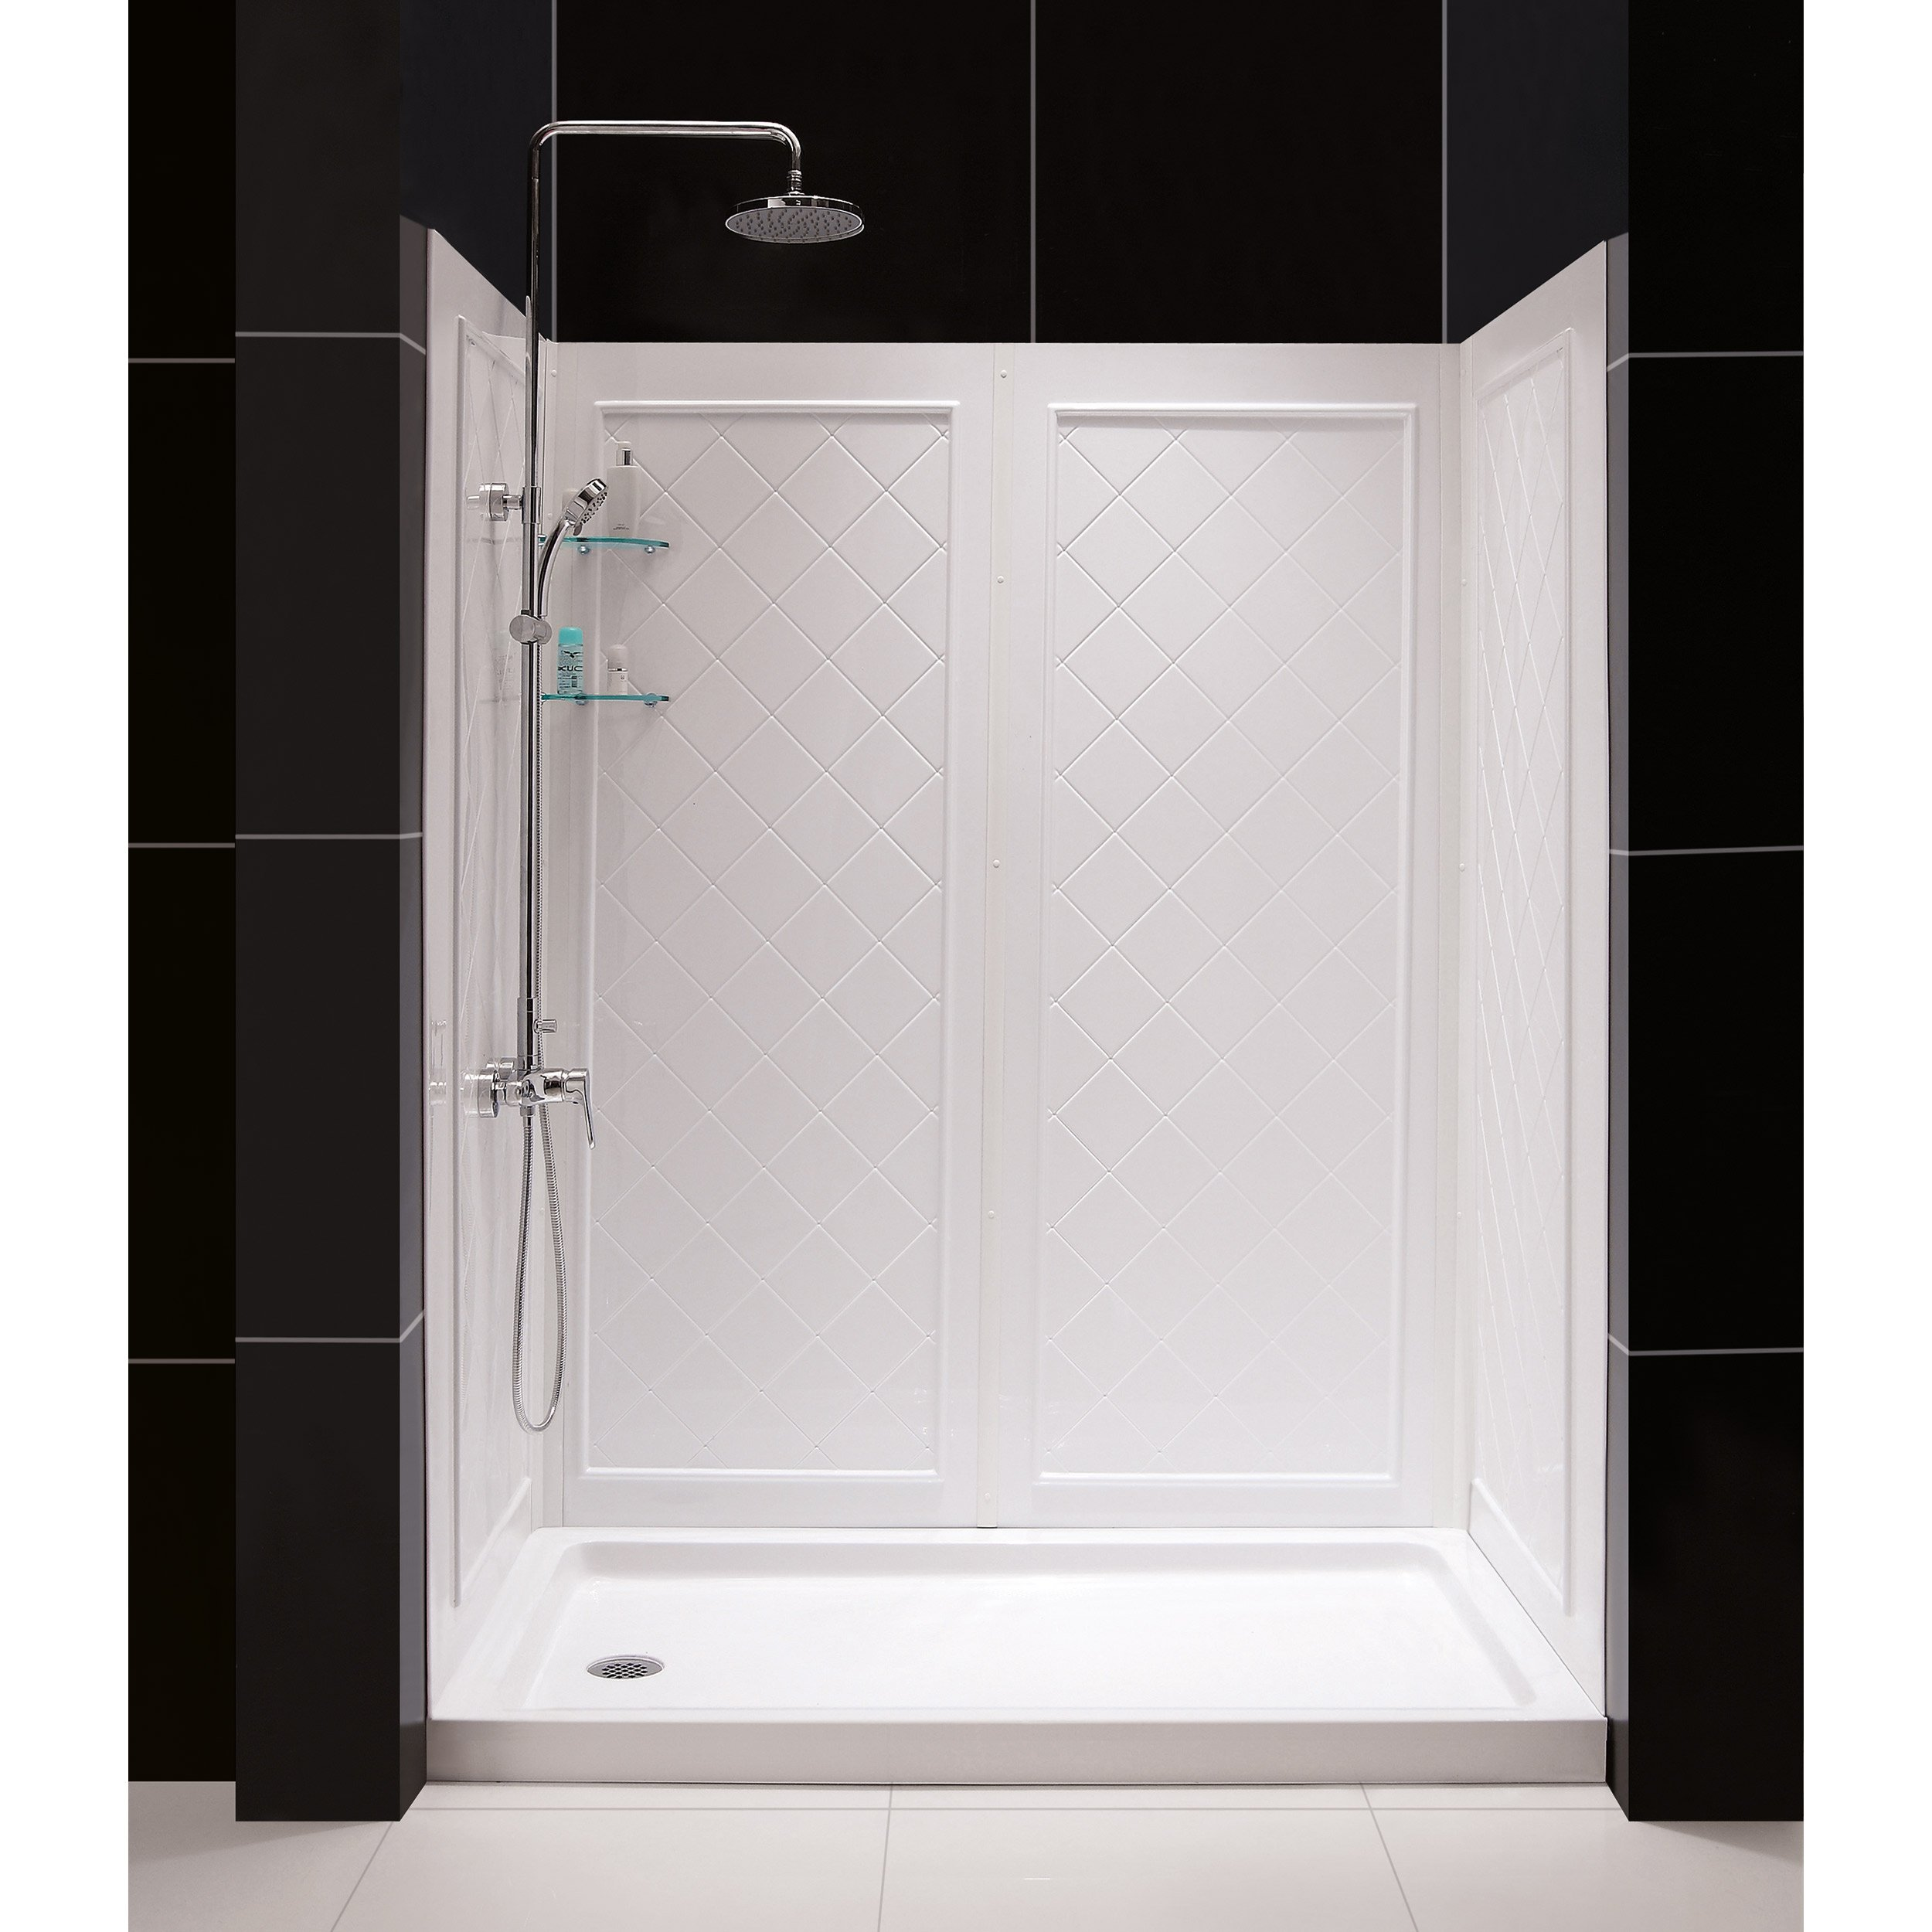 DreamLine SlimLine 36'' by 60'' Shower Base Right Hand Drain and QWALL-5 Shower Backwall Kit, DL-6192R-01 by DreamLine